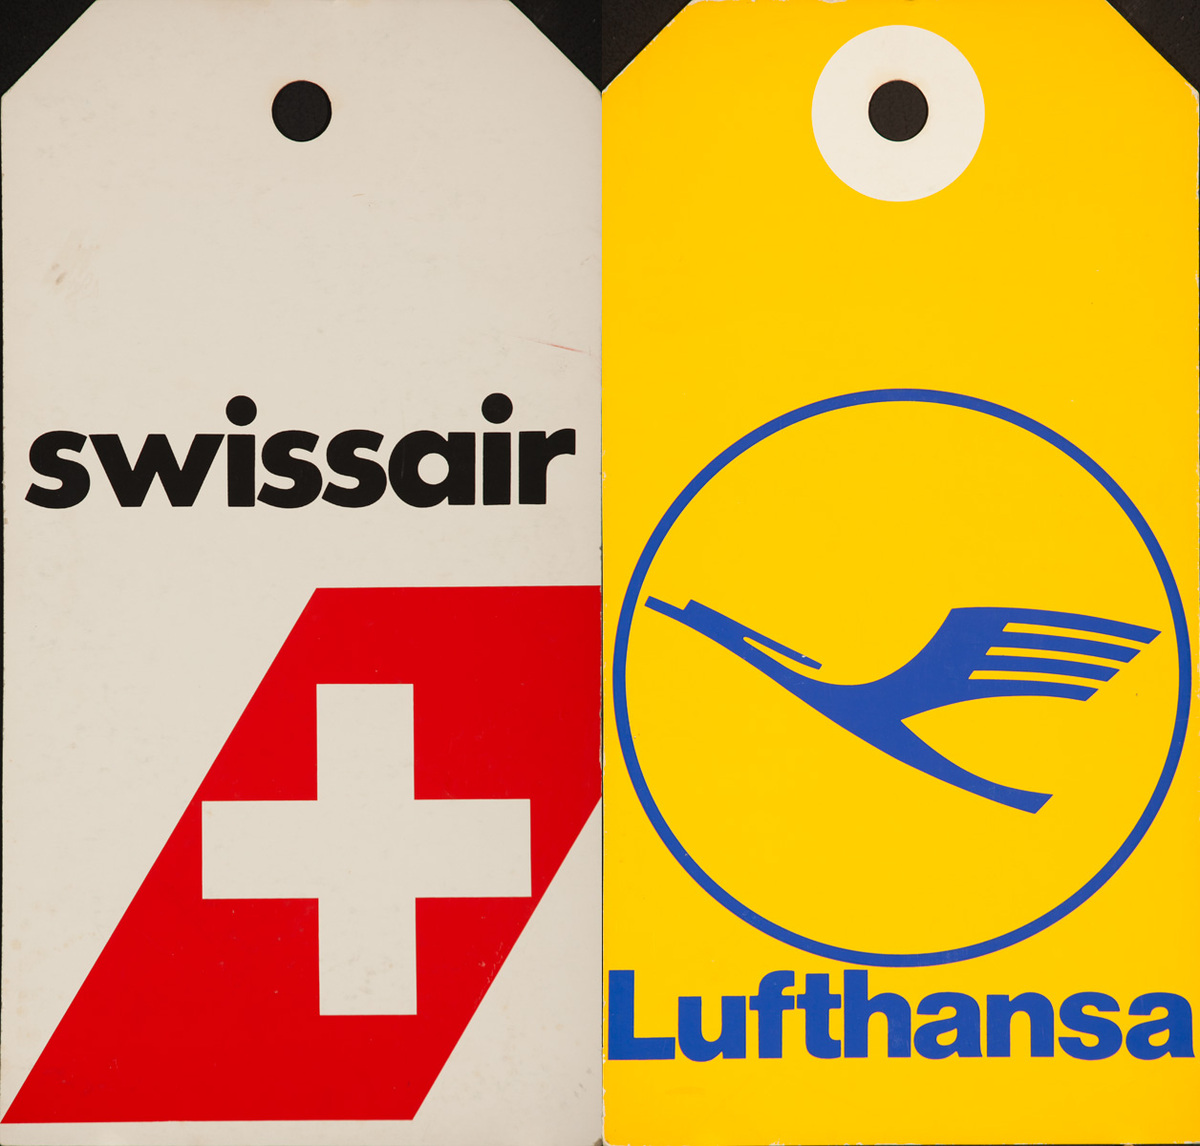 Original 2 Sided Travel Agency Advertising Display Card Poster Swissair and Lufthansa